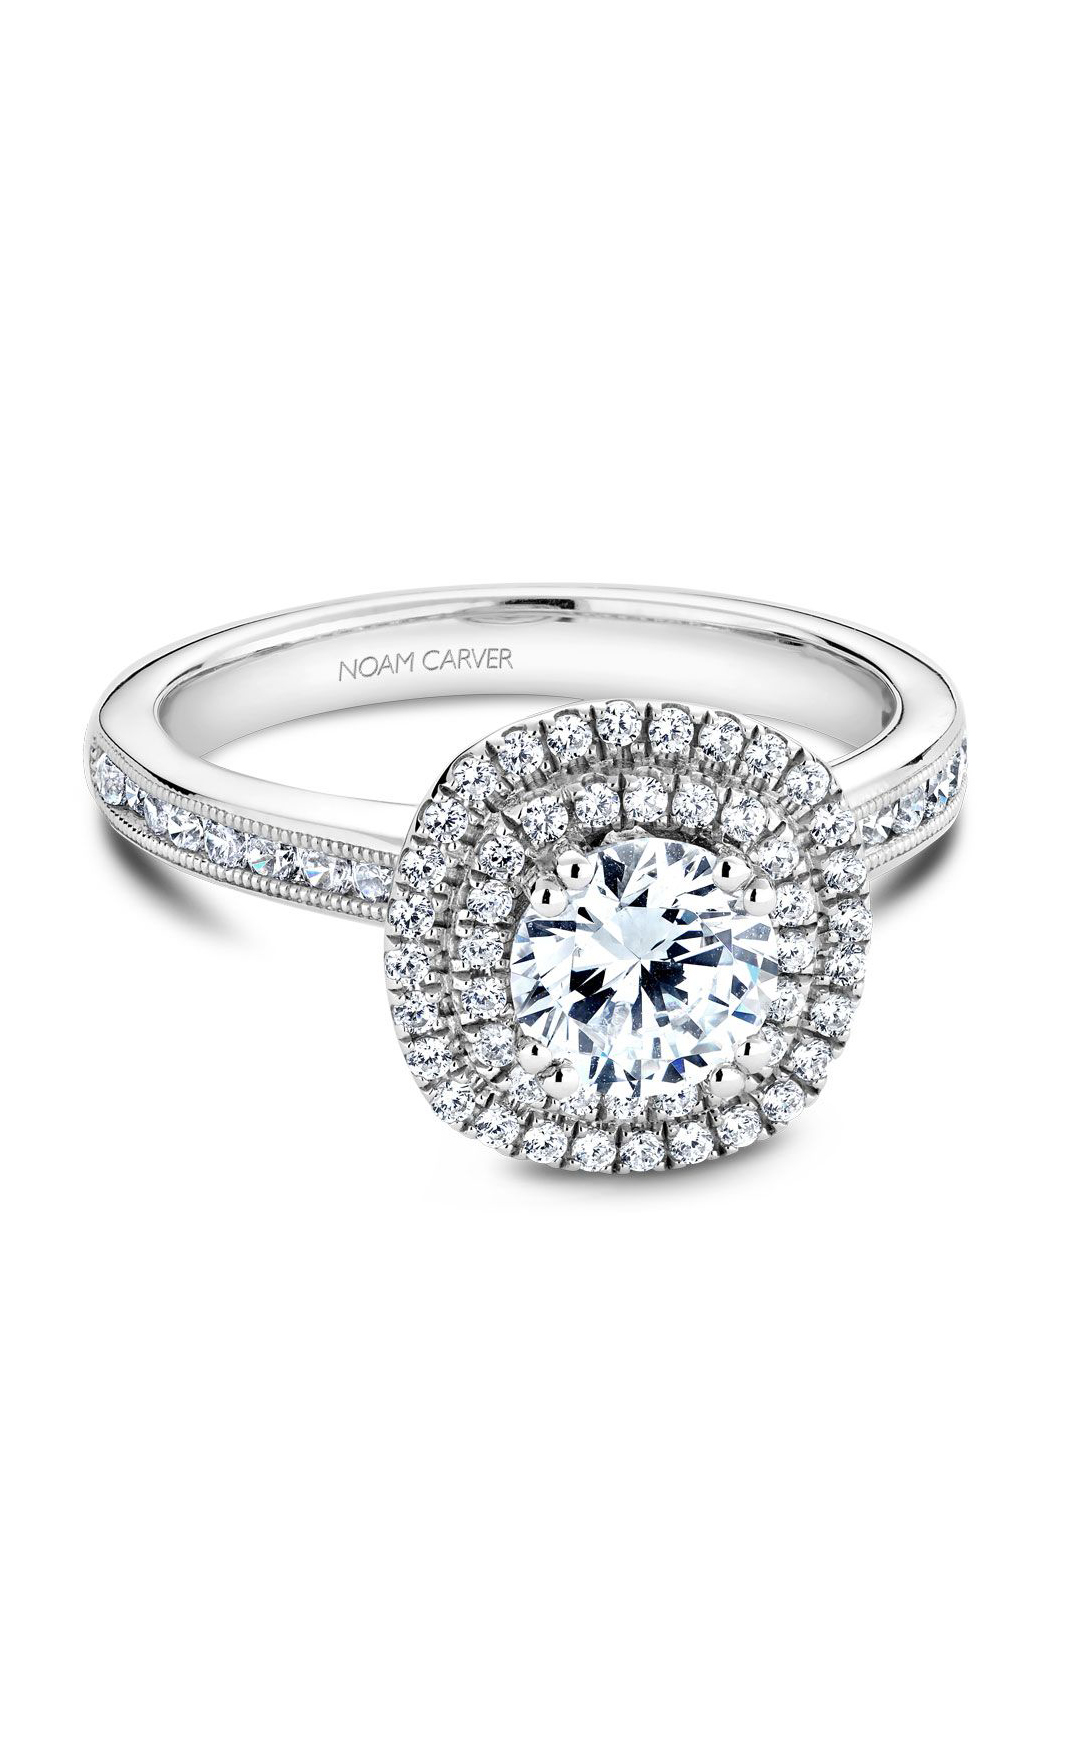 Noam Carver Classic Engagement Ring B145-08A product image